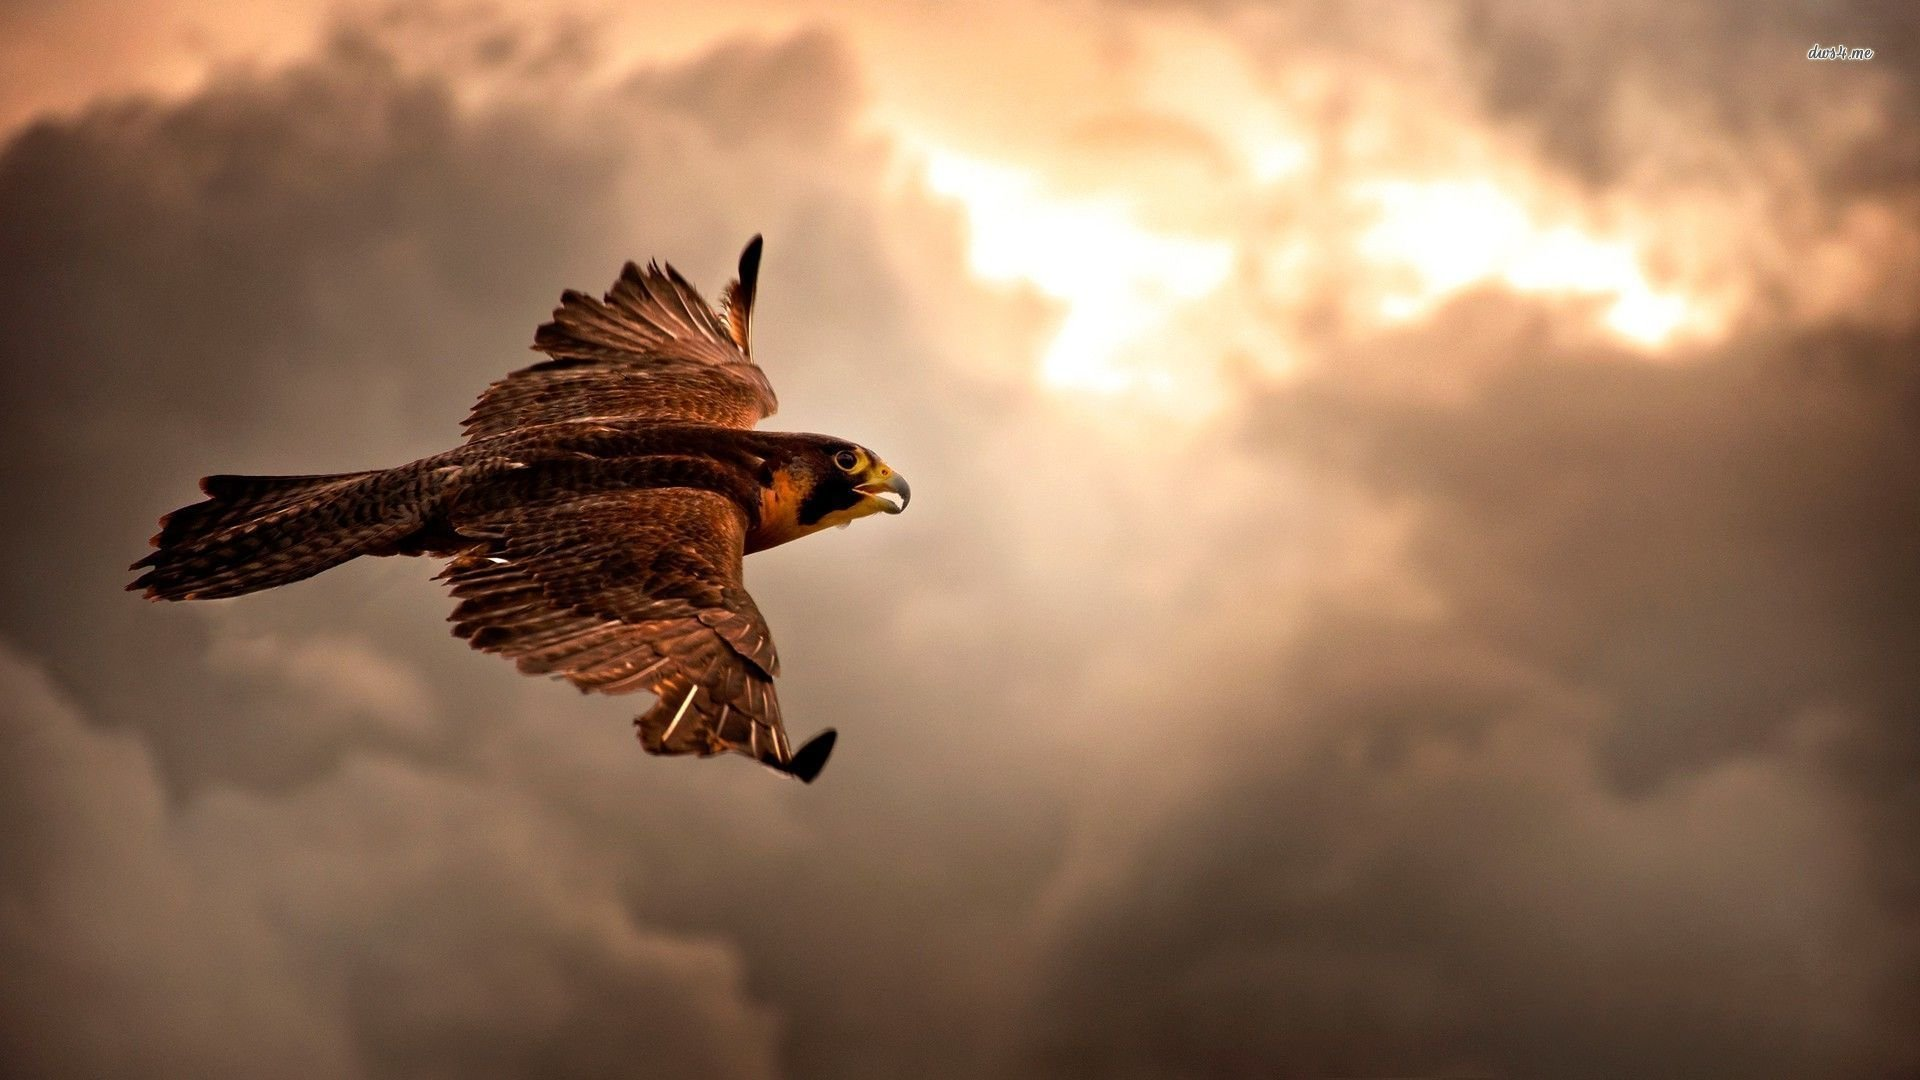 Hawk full hd wallpaper and background image 1920x1080 - Hawk iphone wallpaper ...